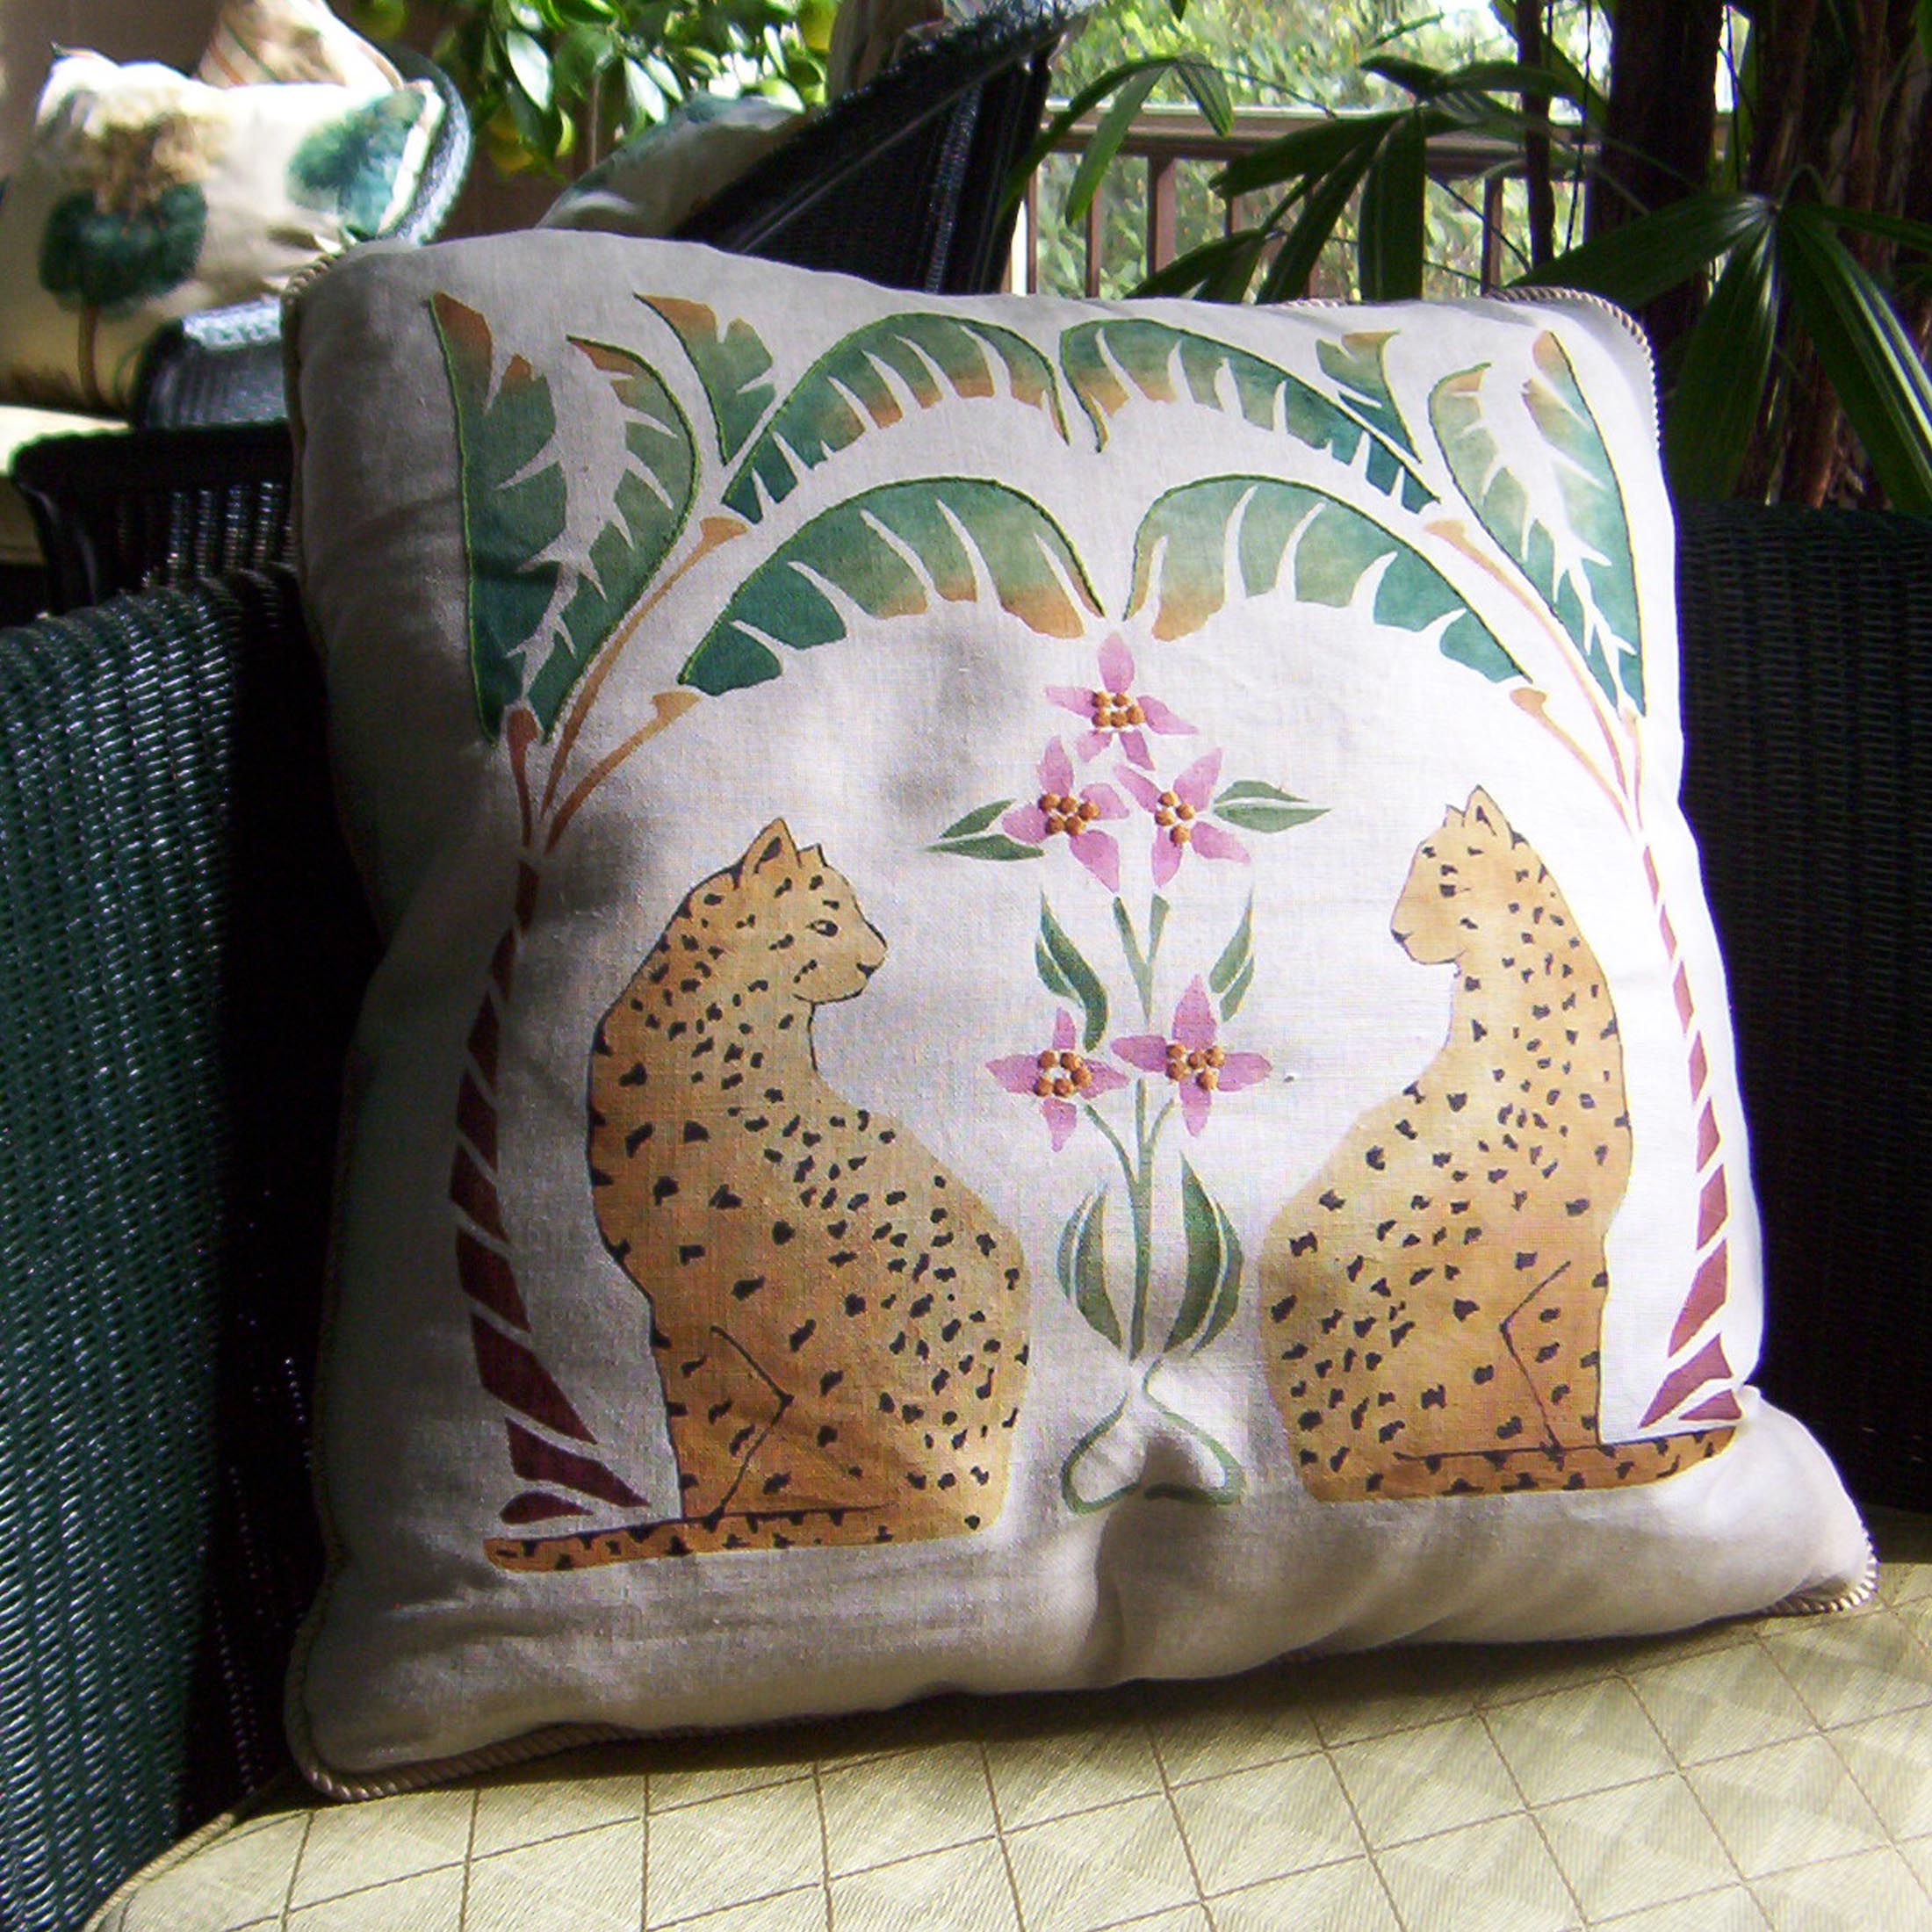 An original design for a couple of pillows for a rather elegant conservatory in Los Angeles. The pillows are stenciled, hand painted and picked out with machine stitching.